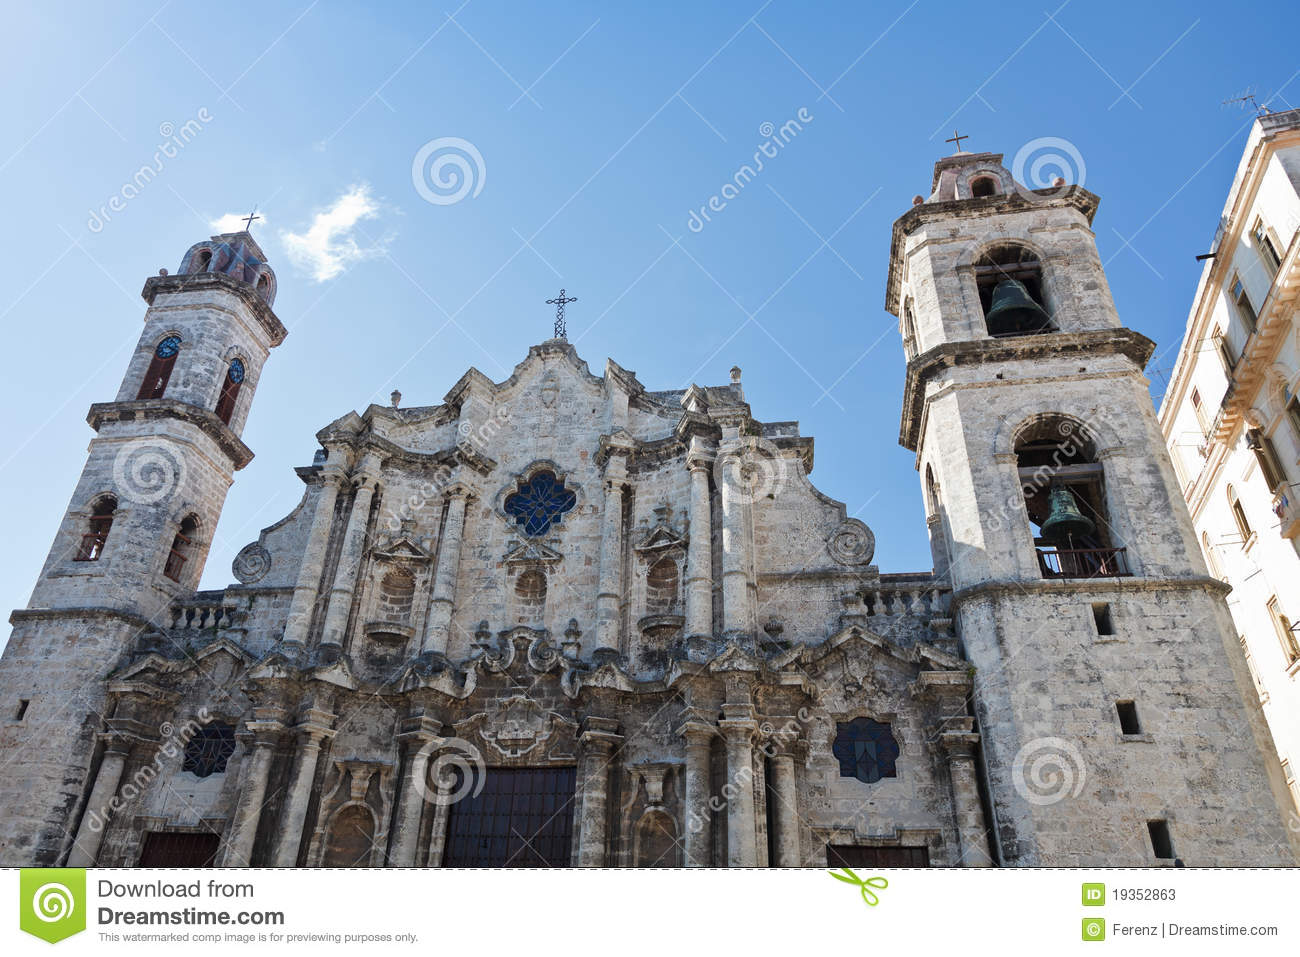 Catedral de Saint Christopher